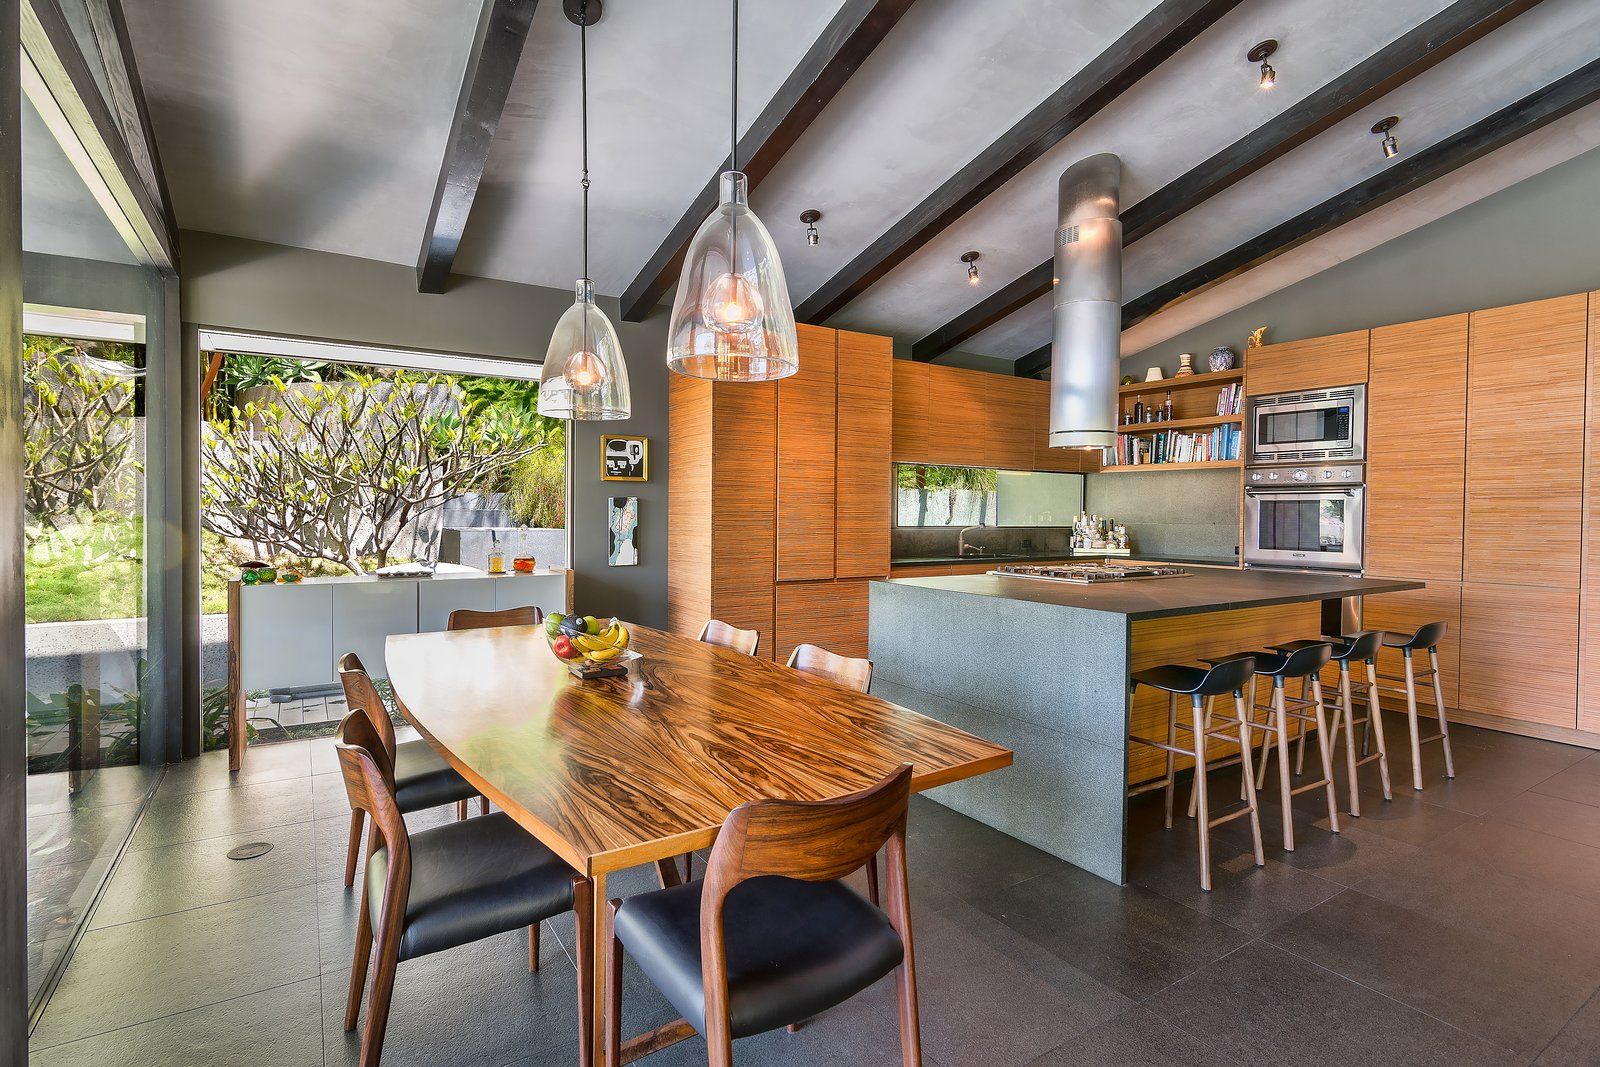 Chair, Table, Pendant Lighting, Stools, Storage, Kitchen, Stone Counter, Wall Oven, Drop In Sink, Wood Cabinet, and Range  Photo 5 of 14 in John Legend and Chrissy Teigen's Former Midcentury Home in the Hollywood Hills Is For Sale